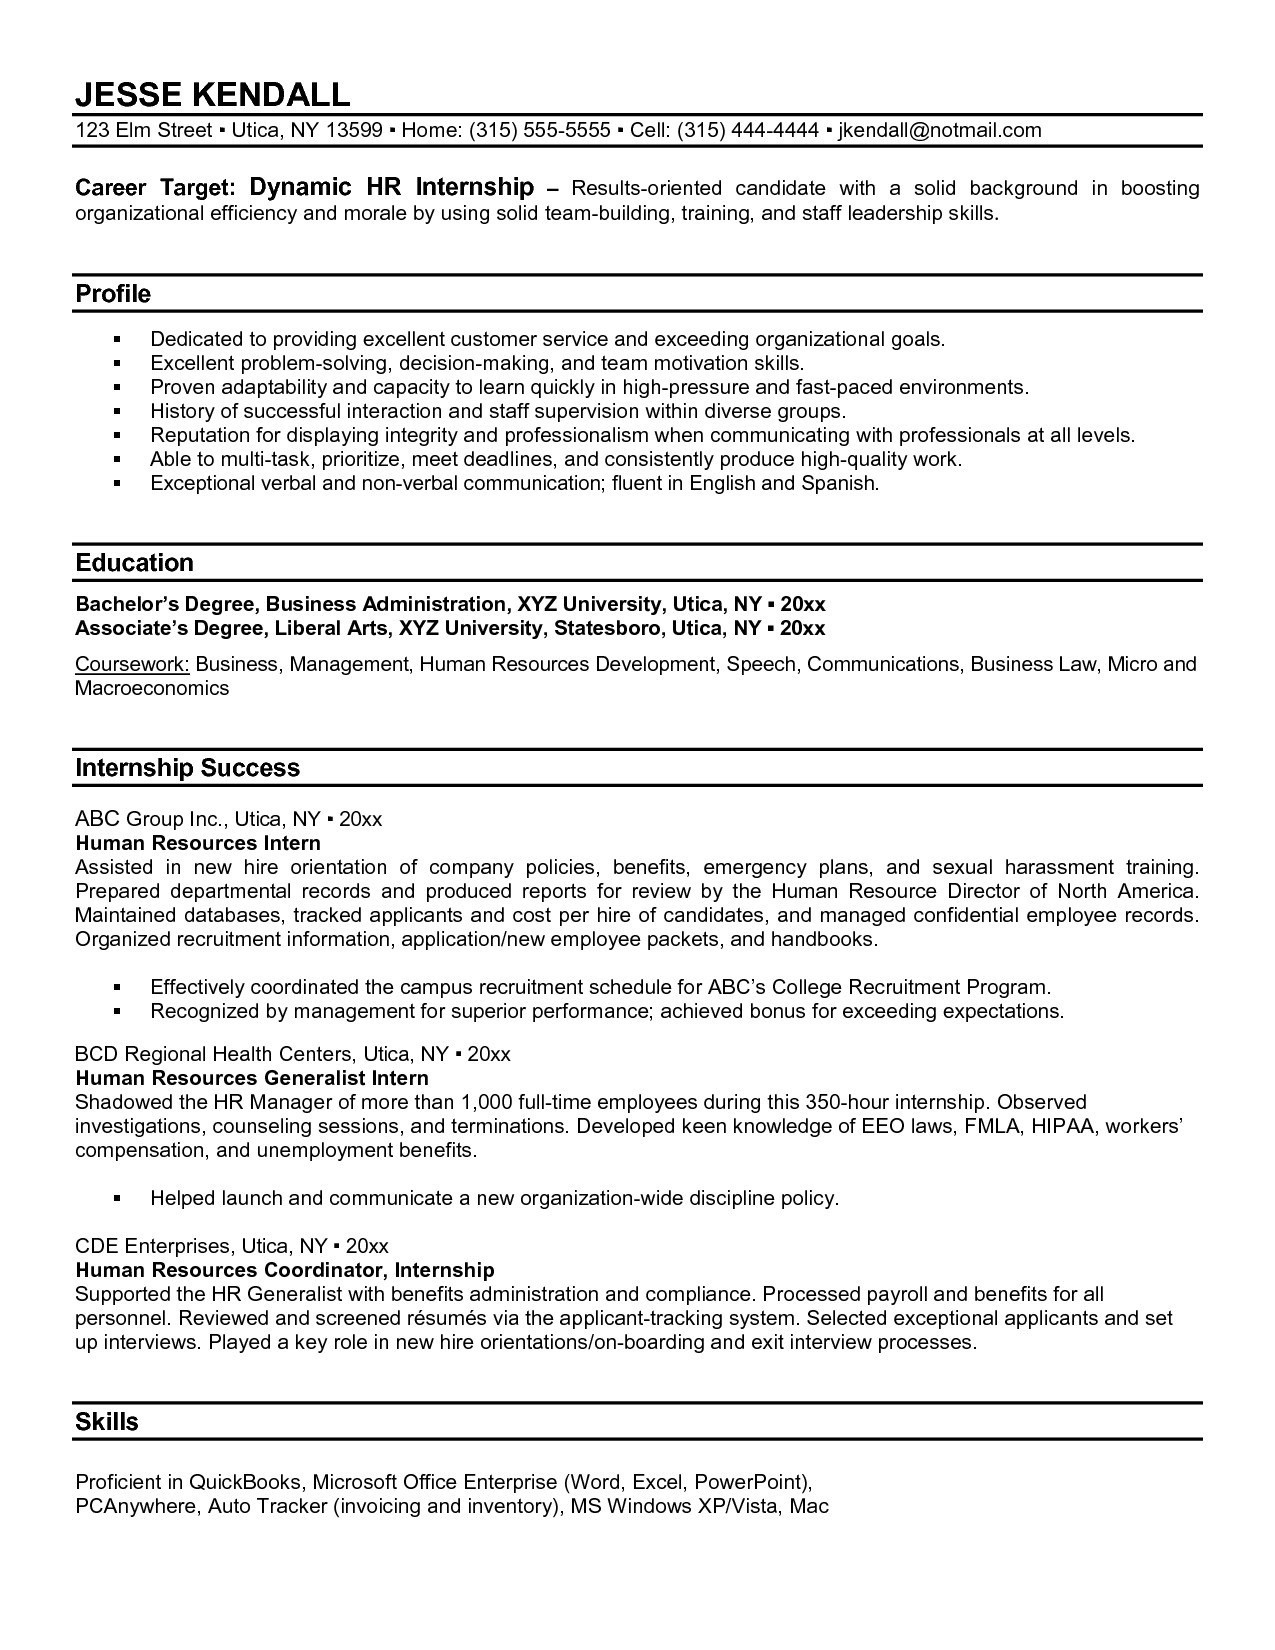 Applicant Tracking System Resume - Human Resources Resume Best New Programmer Resume Lovely Resume